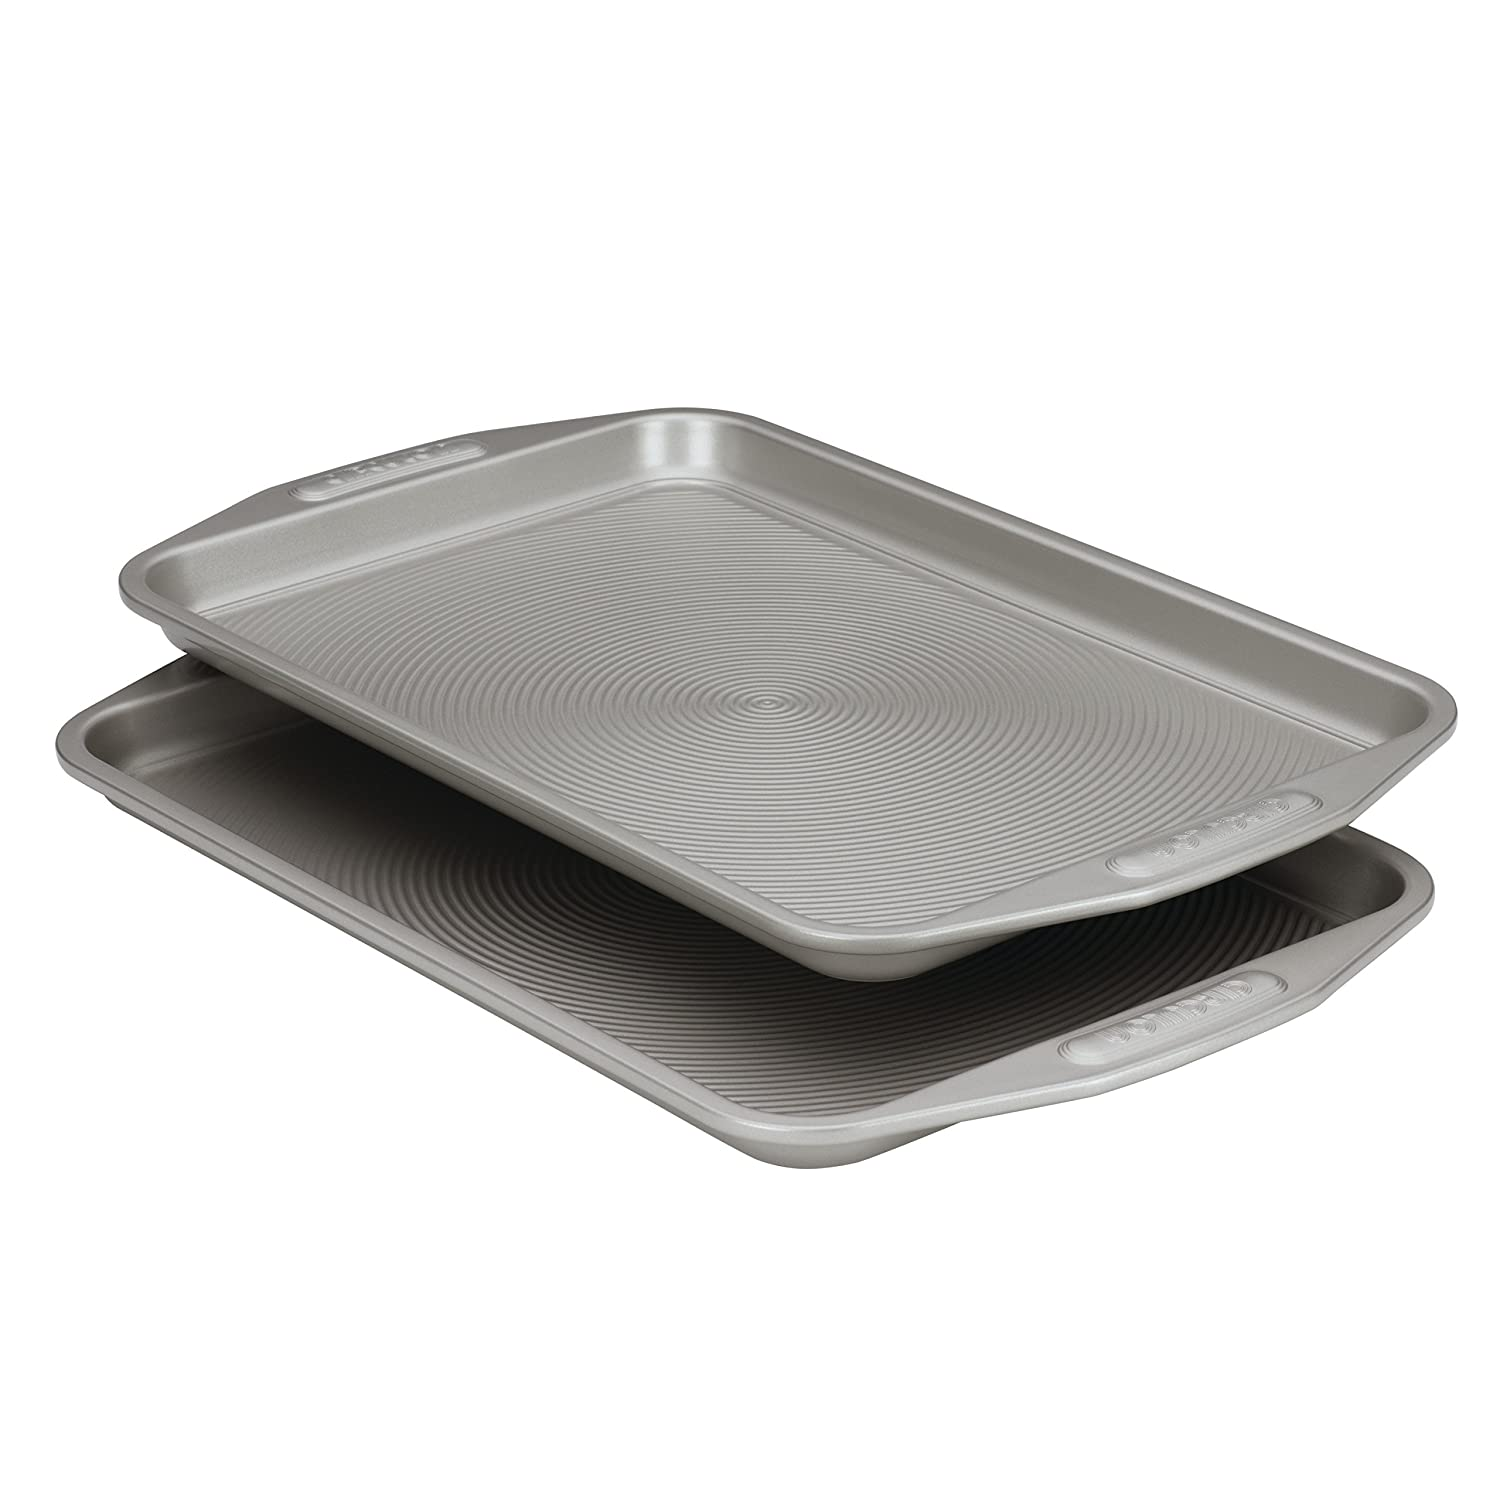 Circulon Nonstick Bakeware 2-Piece Bakeware Set, Gray